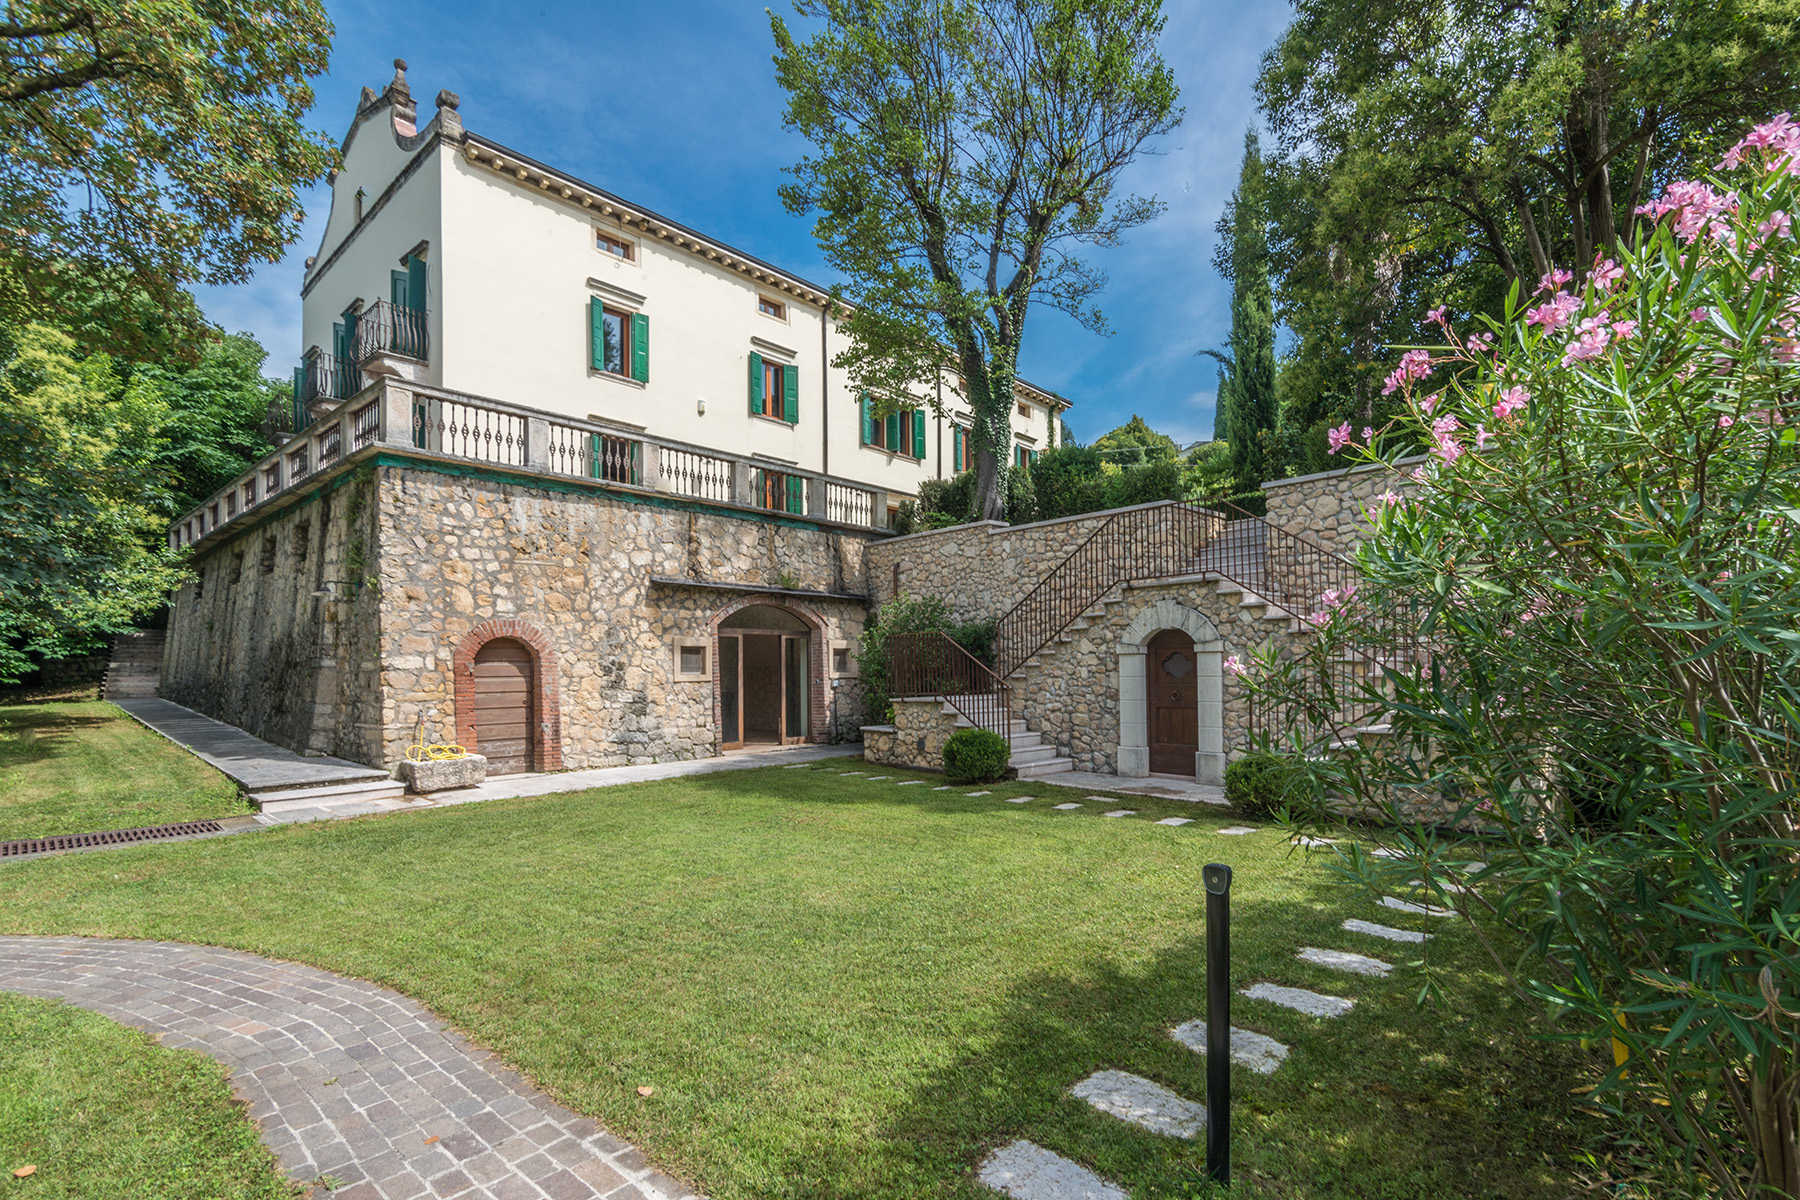 Single Family Home for Sale at Antique villa immersed in the Verona hills via Sparavieri Other Verona, Verona 37024 Italy